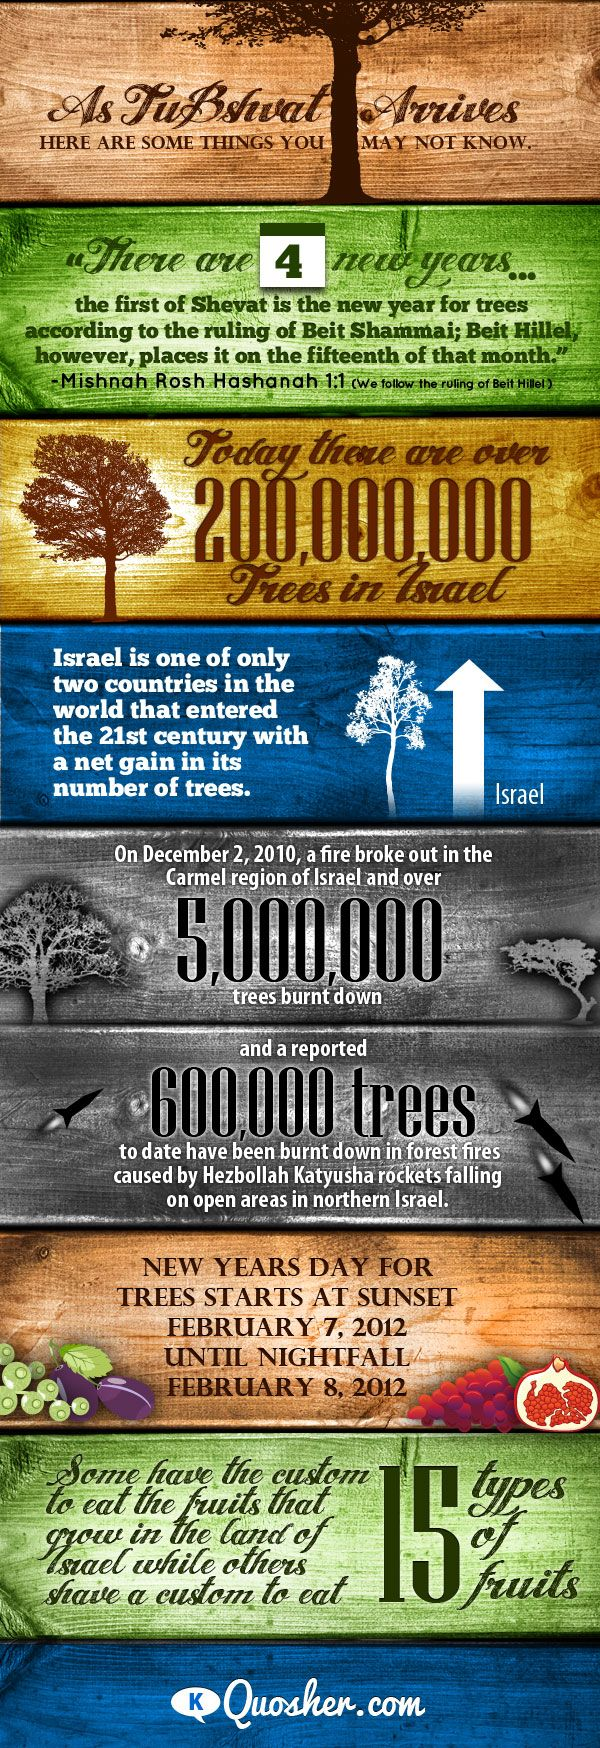 We love the holiday and meaning in Tu B'Shevat.  This infographic is a great way to see how your donation of a tree helps Israel.  #Dreideljams